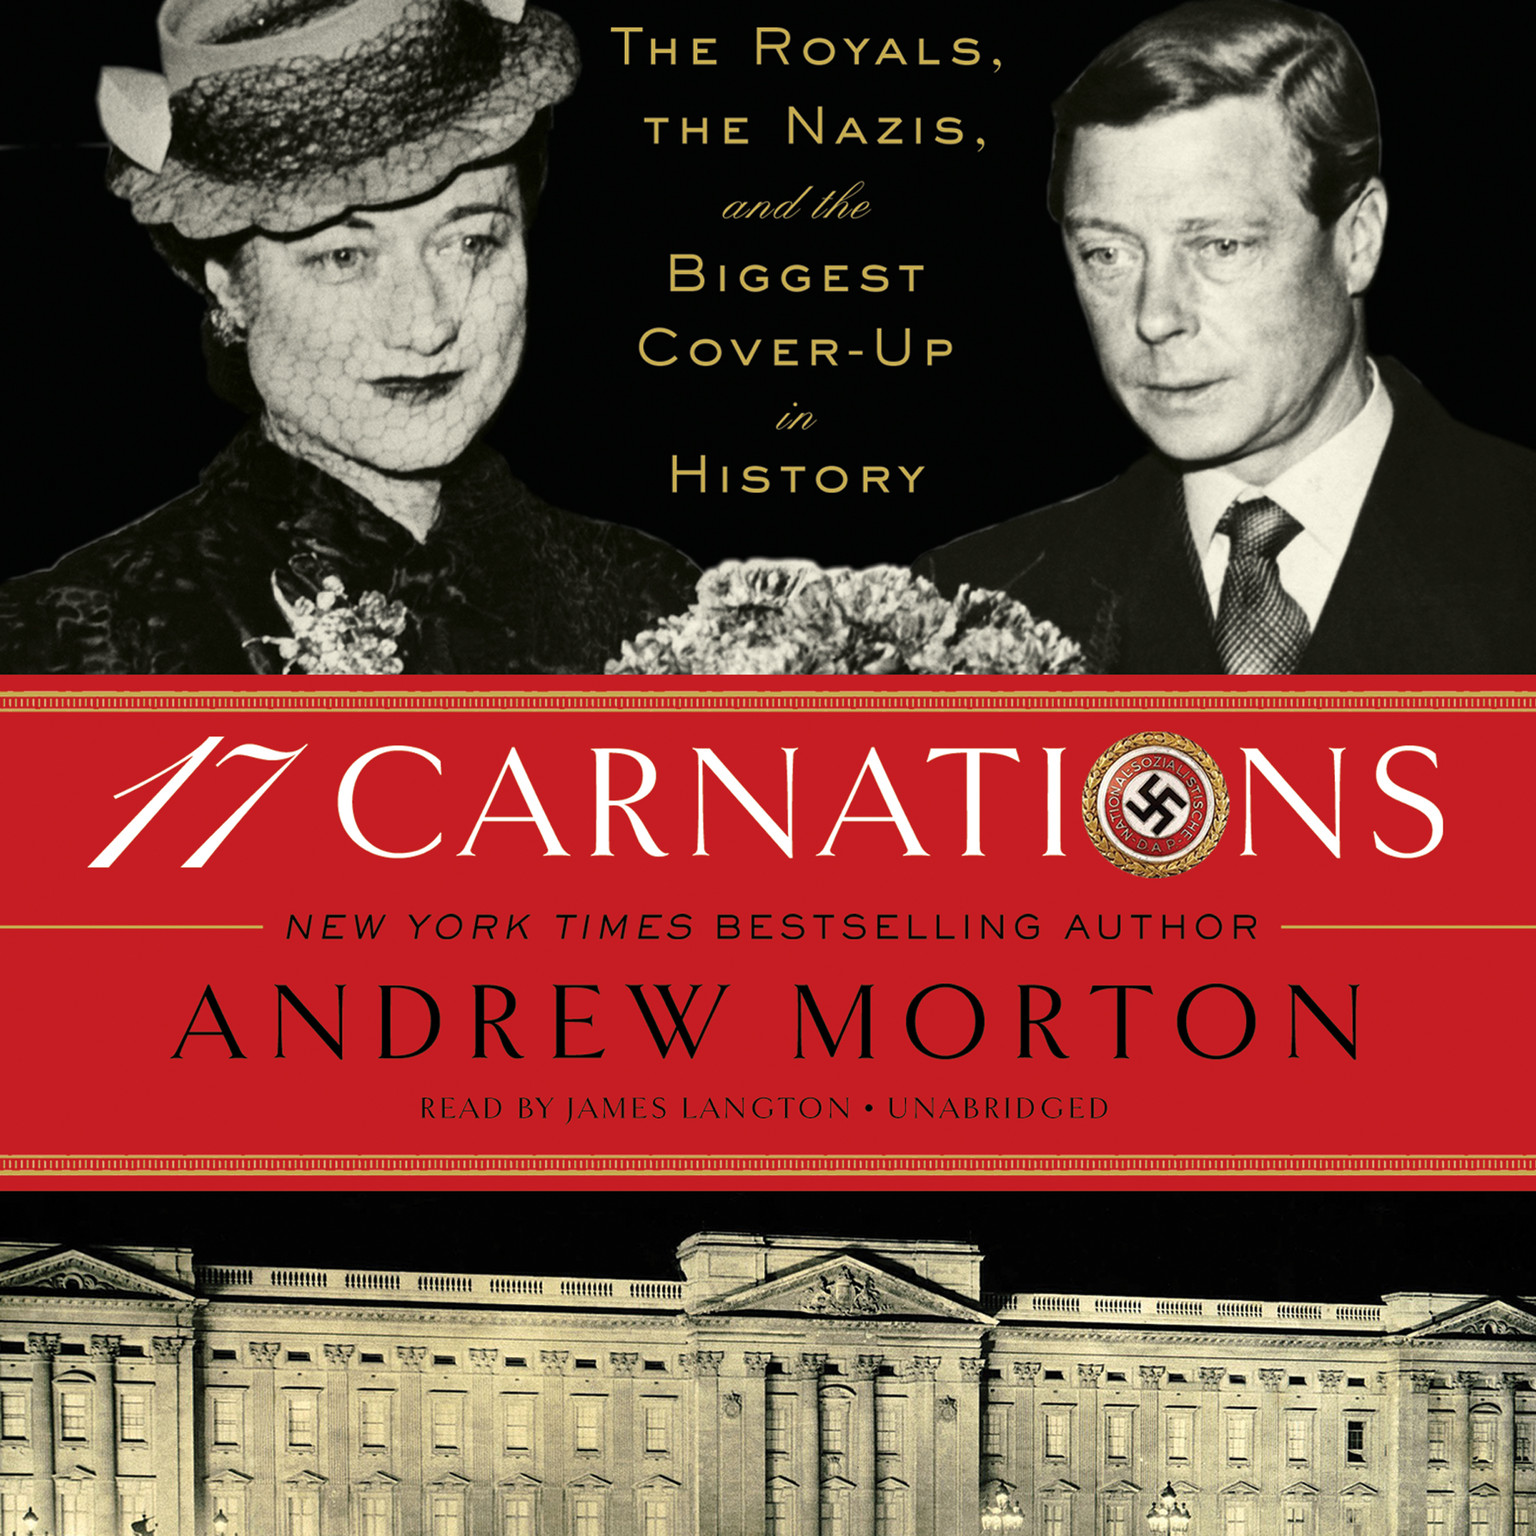 Printable 17 Carnations: The Royals, the Nazis, and the Biggest Cover-Up in History Audiobook Cover Art